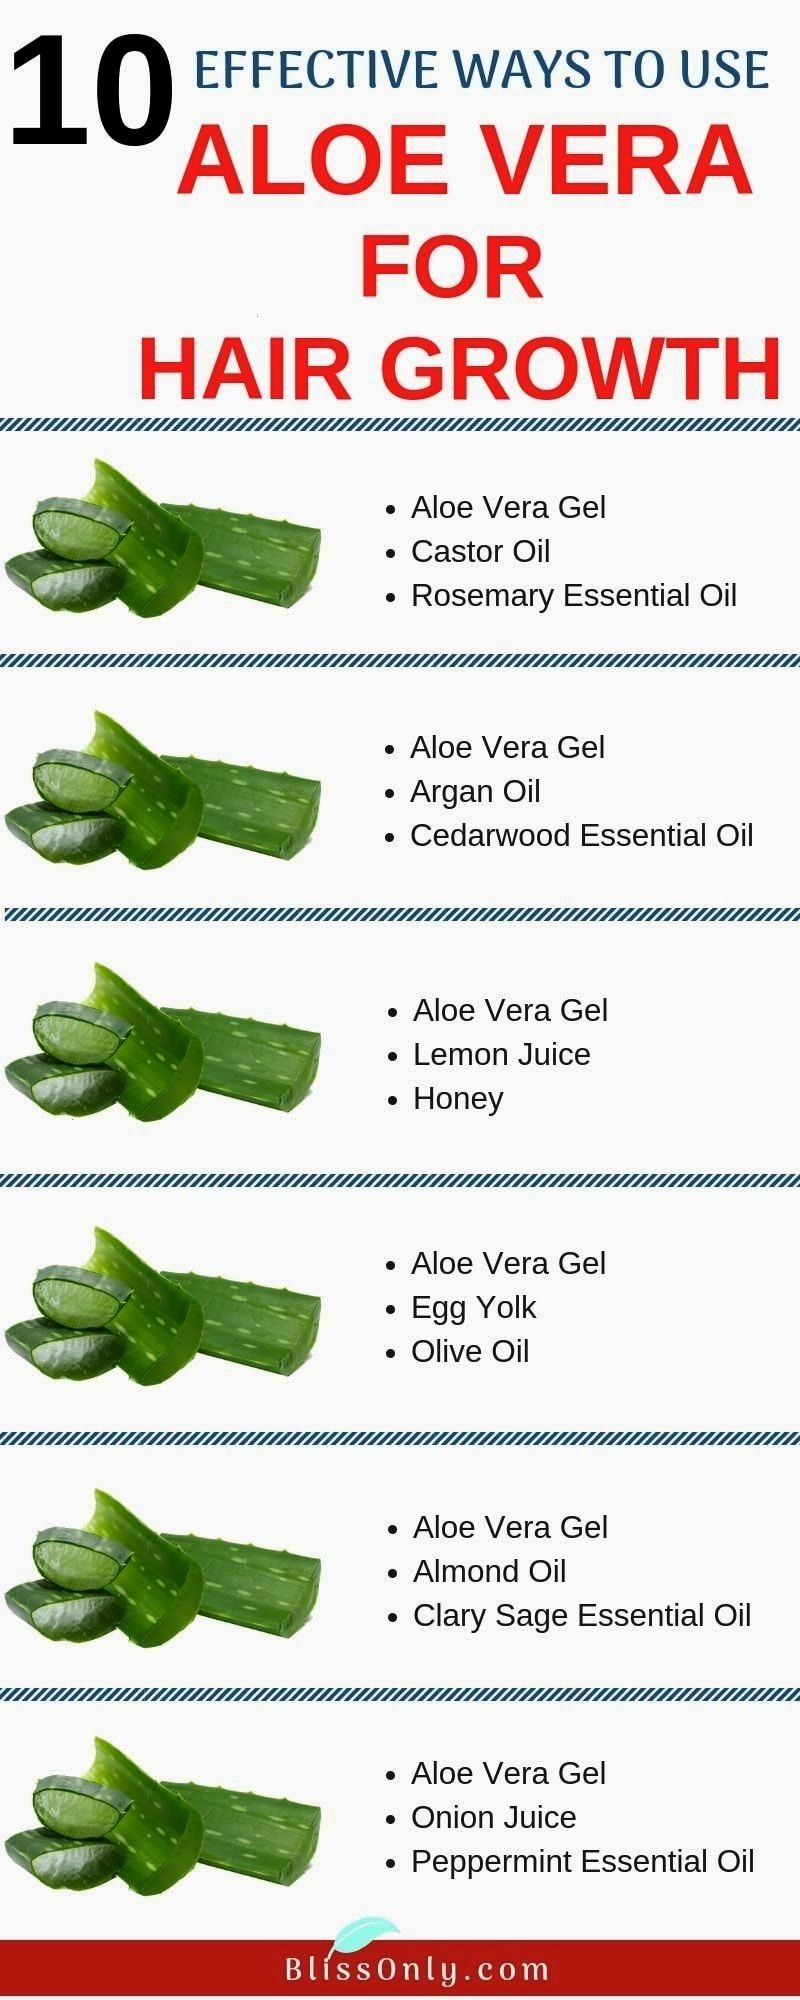 aloe vera be left in hair aloe vera hair mask overnightaloe vera hair mask overnight Braid hairstyle has always been a symbol of beauty Therefore hairstyles with braids r...